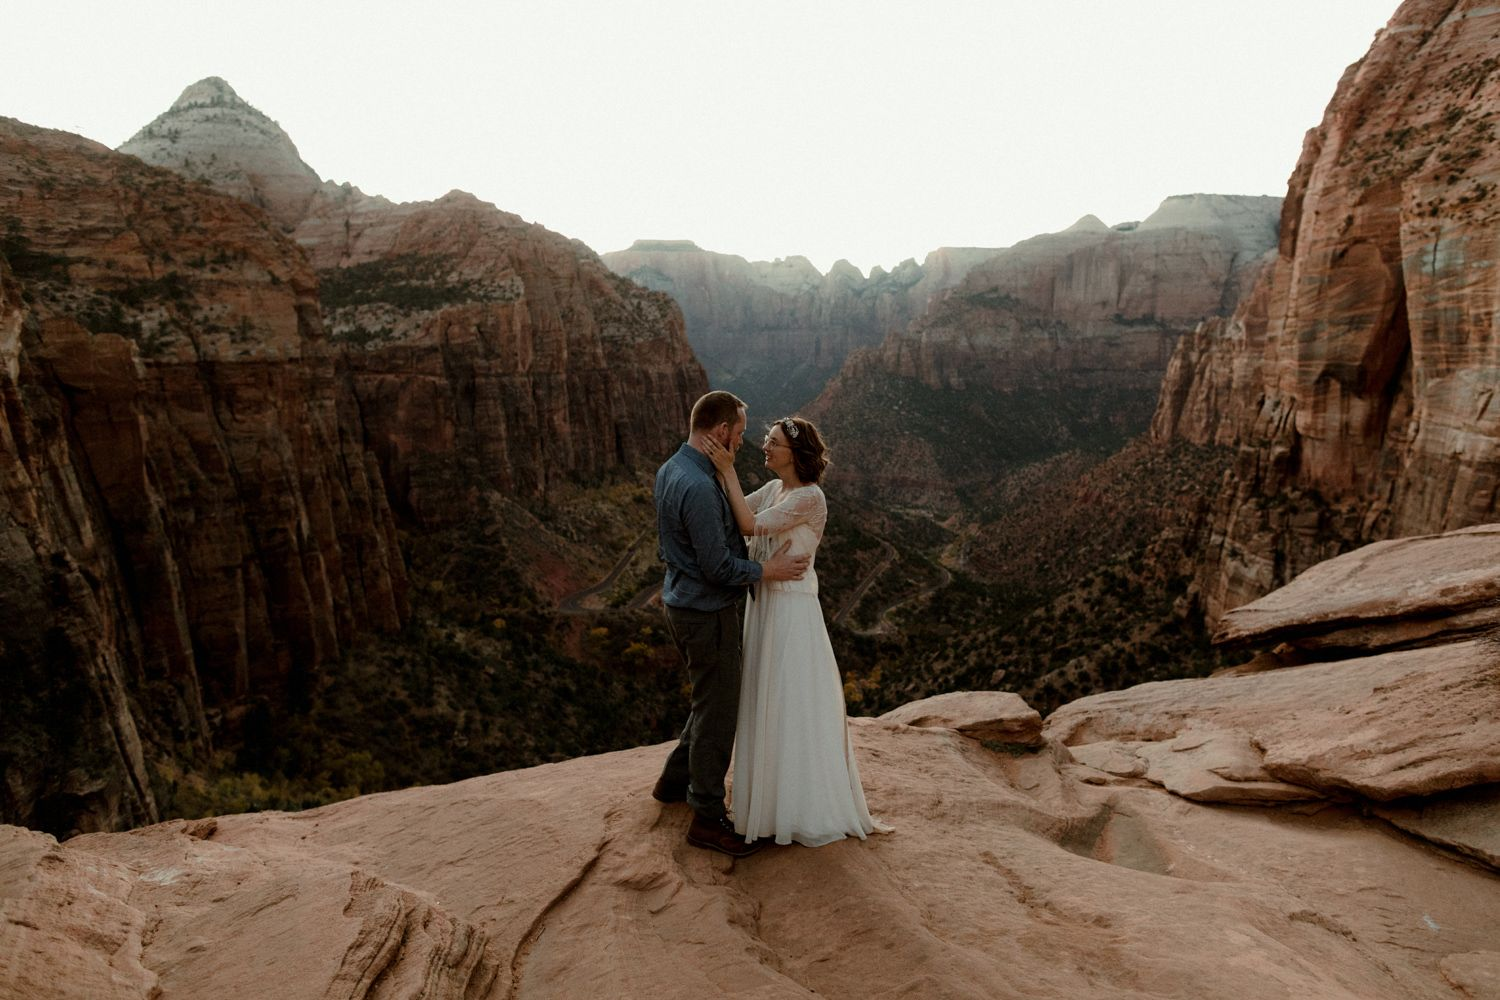 Zion National Park Wedding National Park Wedding Park Weddings Zion National Park